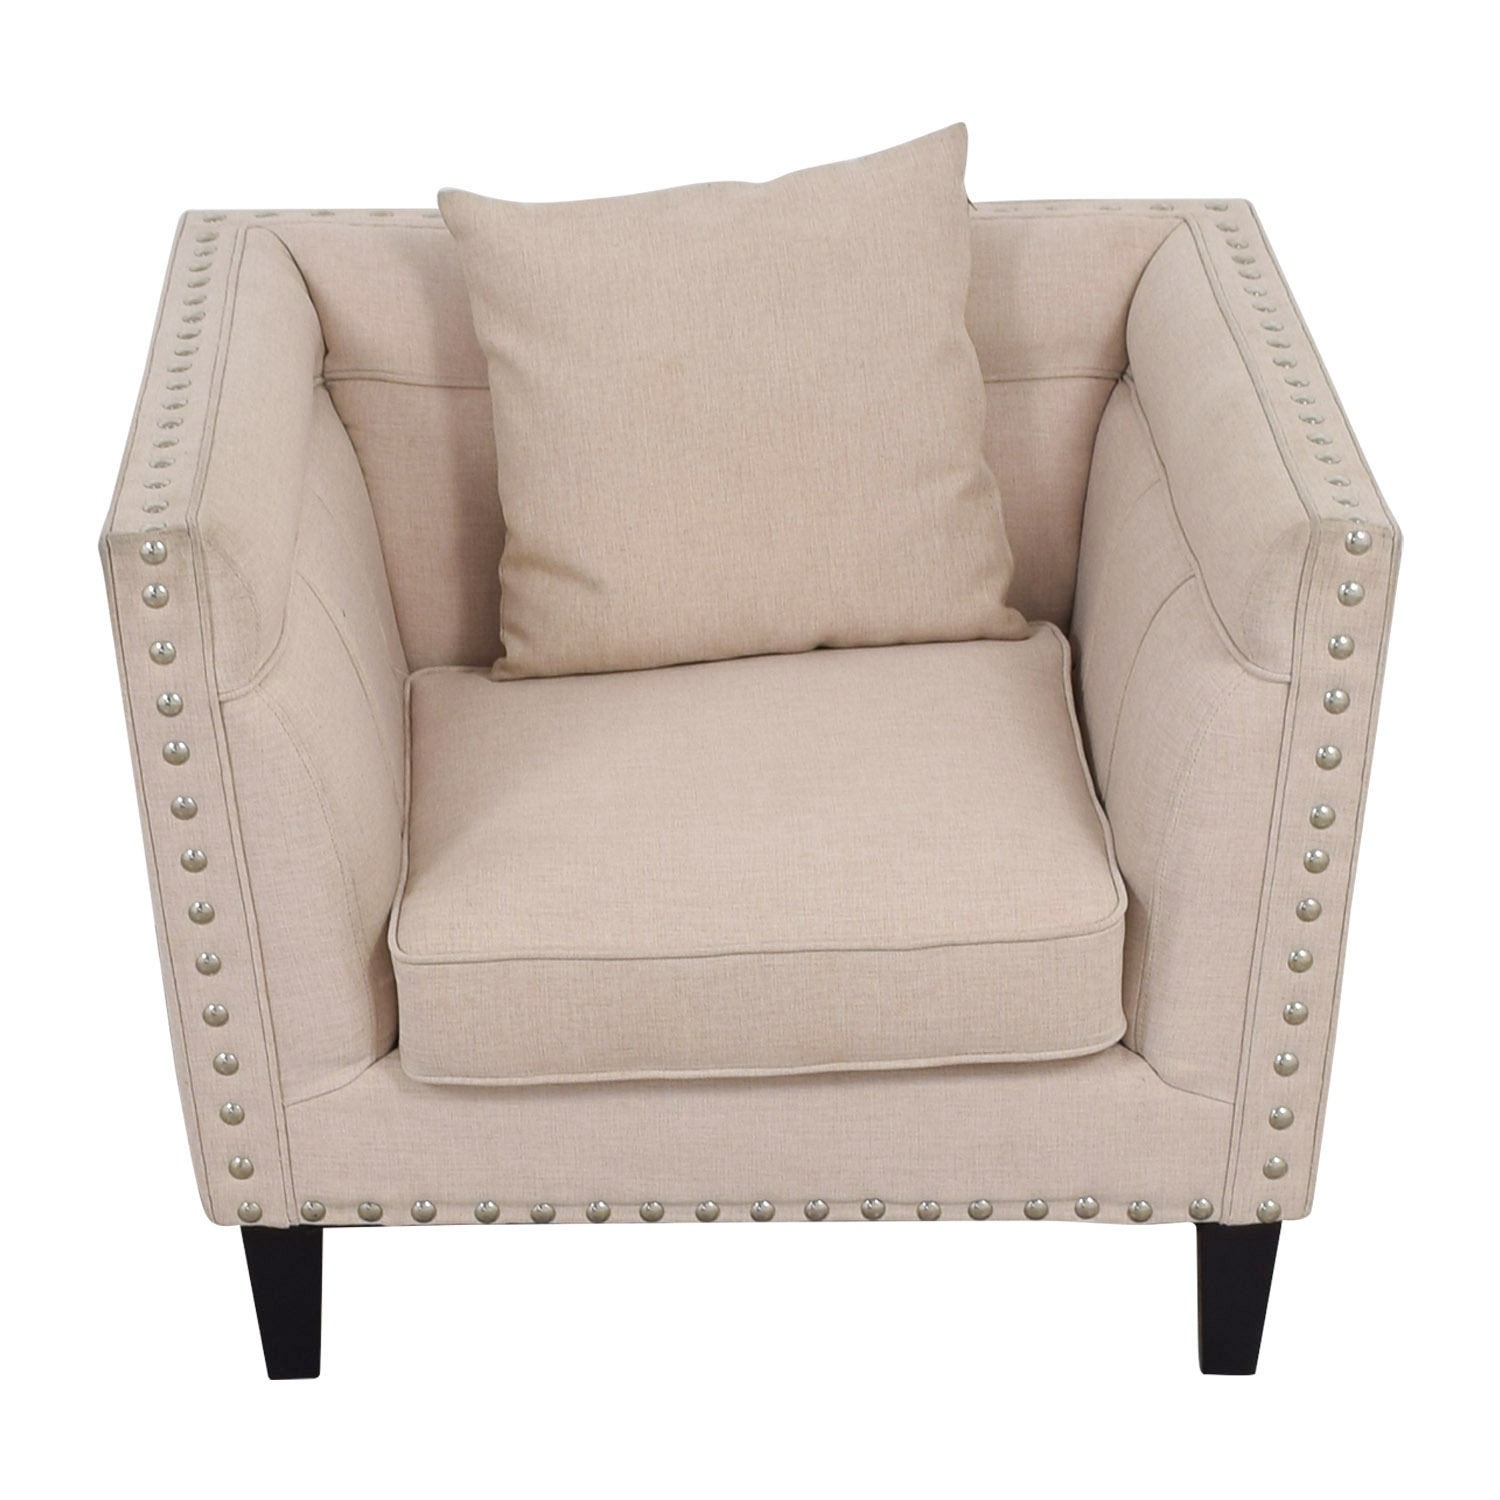 House of Hampton House of Hampton Beige Nailhead Square Upholstered Armchair dimensions